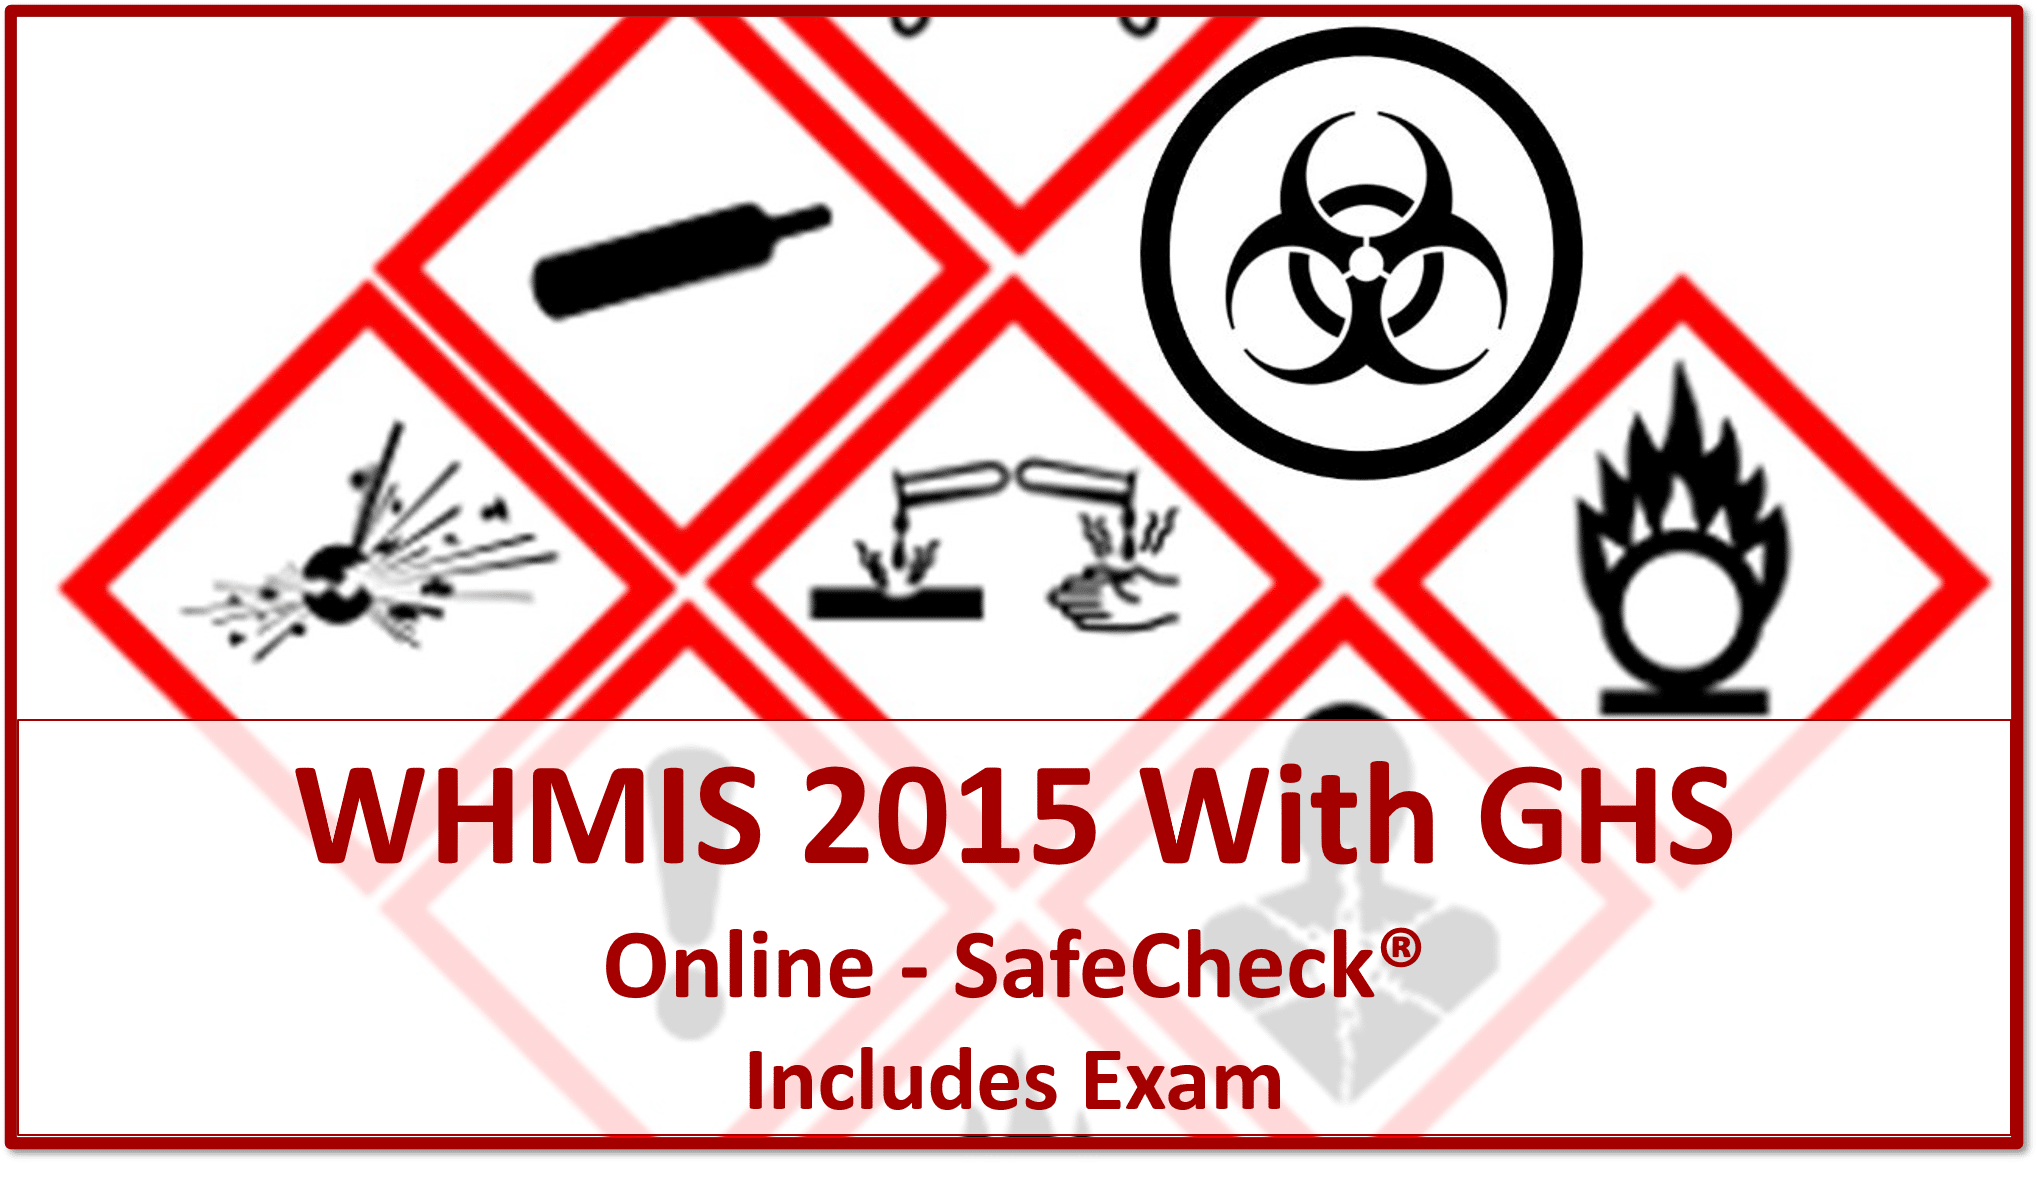 SafeCheck WHMIS 2015 With GHS